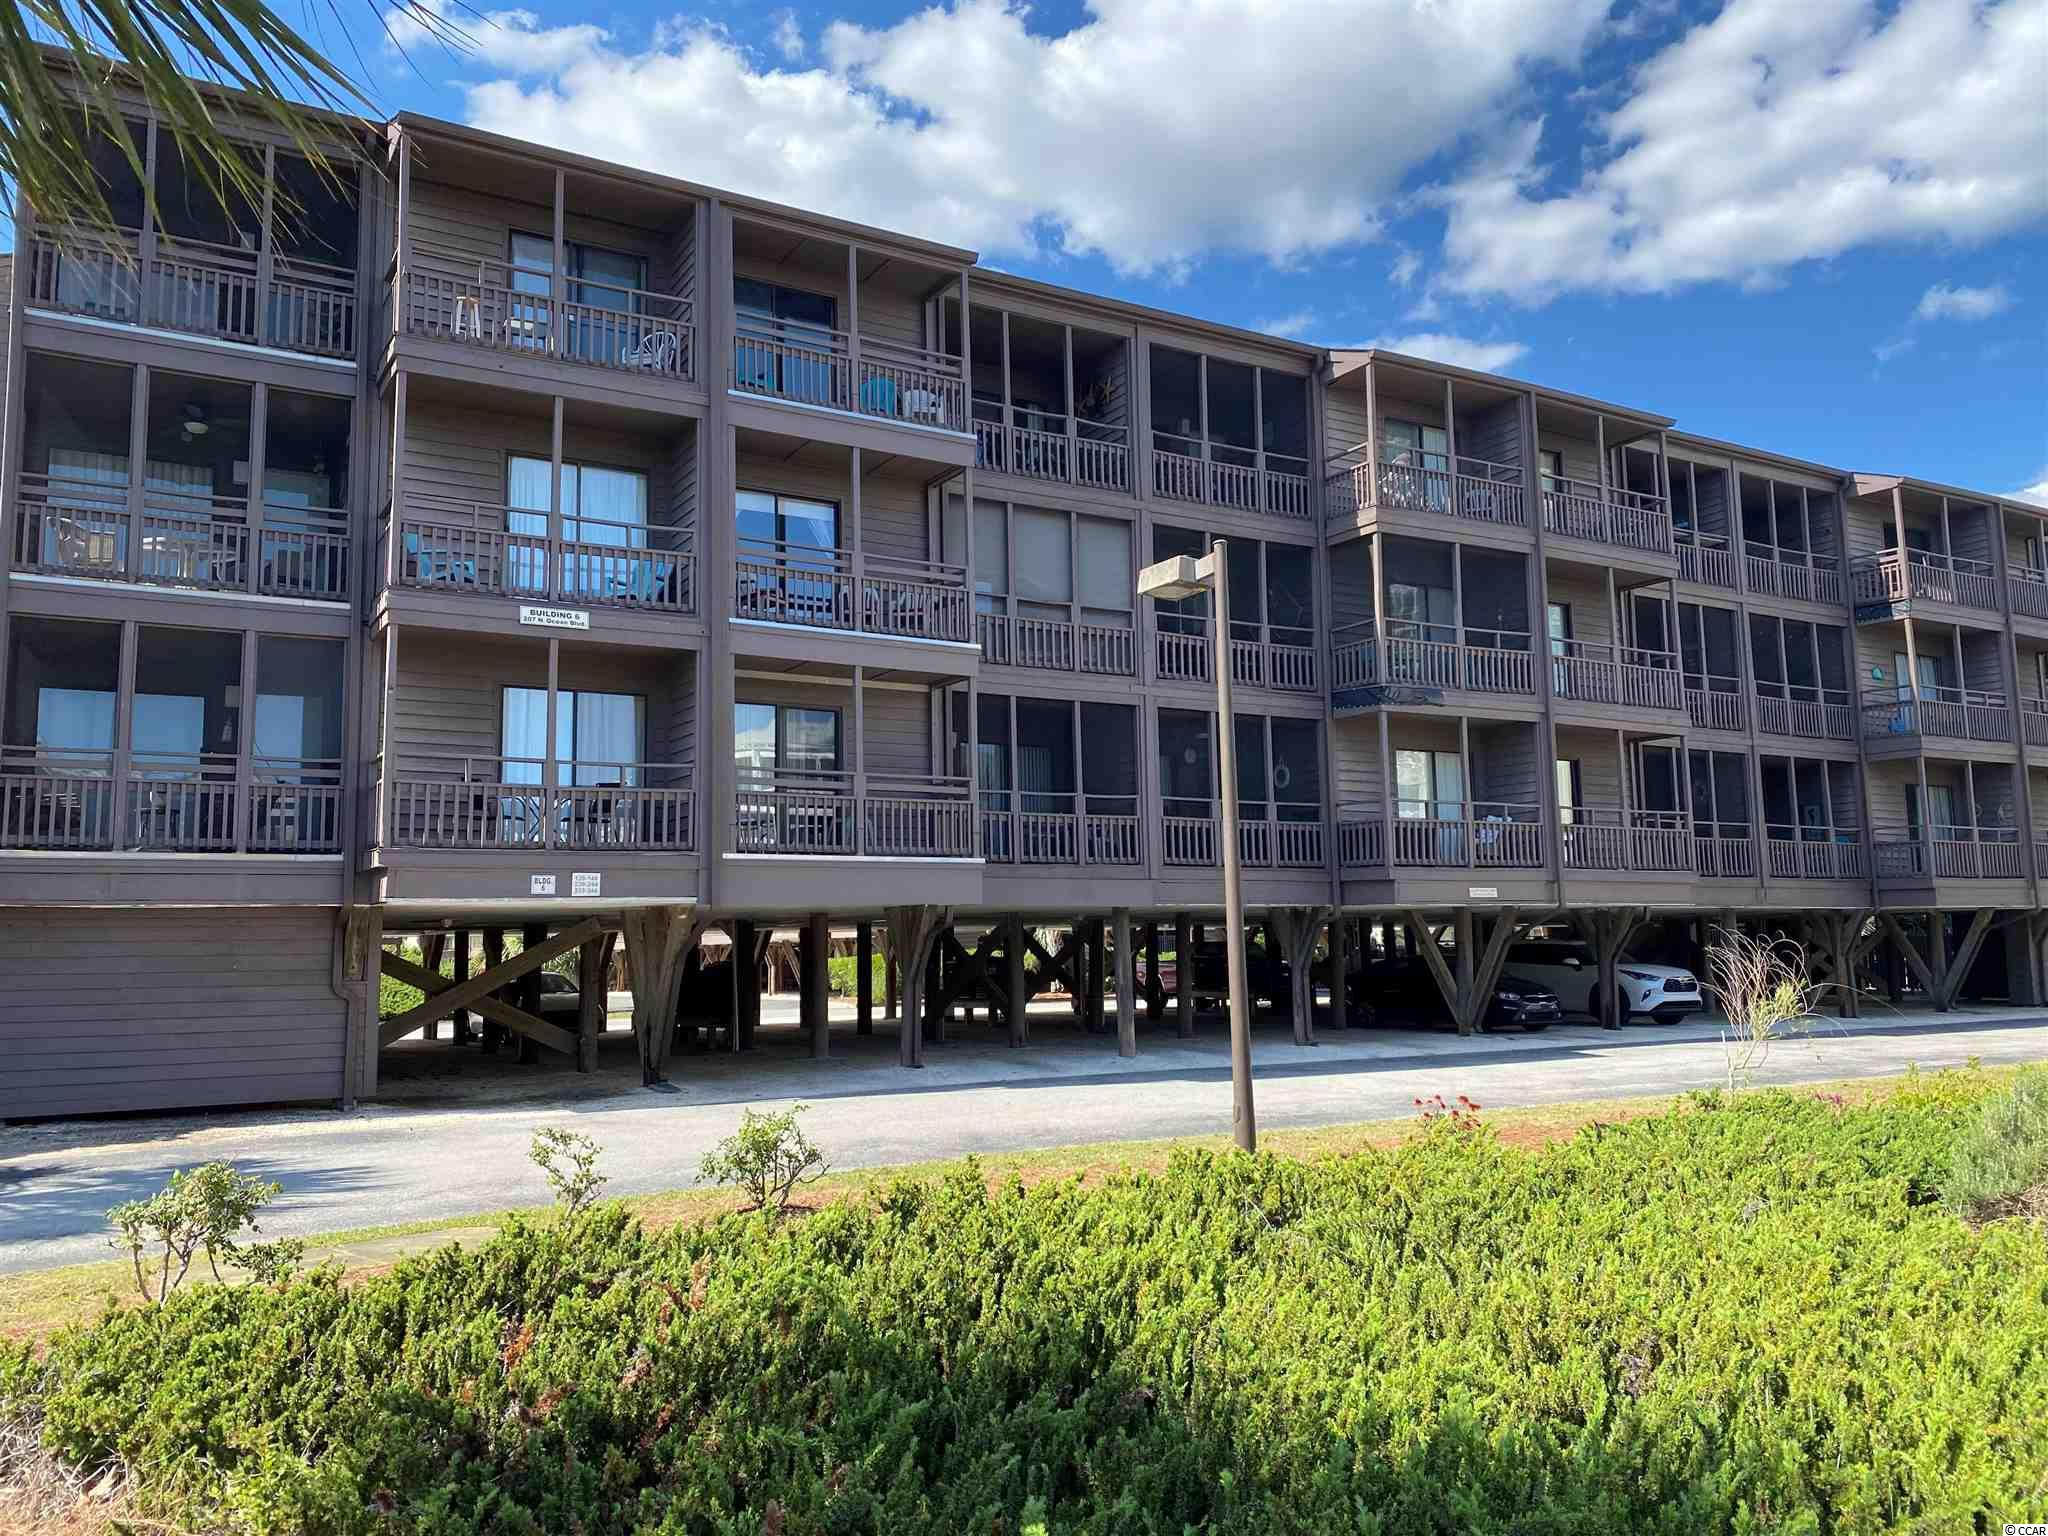 """Here's your chance to own a top floor end unit overlooking Ocean Blvd in the """"Ocean Drive"""" section of North Myrtle Beach.  You'll enjoy the high ceilings, skylight and extra windows of the end unit. Tilghman Beach and Racquet 339 has 3 bedrooms with 2 full baths and 1 half bath.  Some upgrades include the hot water heater, living room furniture, TV's, fresh paint and cabinets in the bathroom.  Watch the activities along the boulevard from your private balcony of the master bedroom or screened balcony off the living room.  No need to worry about stairs, the elevator is close to this unit.  Enjoy the amenities of the resurfaced tennis courts and pool just behind the building or the sandy beach and ocean are across the street.  Also you are just 2 blocks to """"main street"""" Ocean Drive and just a short drive to dining, shopping, entertainment, golf, and all the Grand Strand has to offer."""